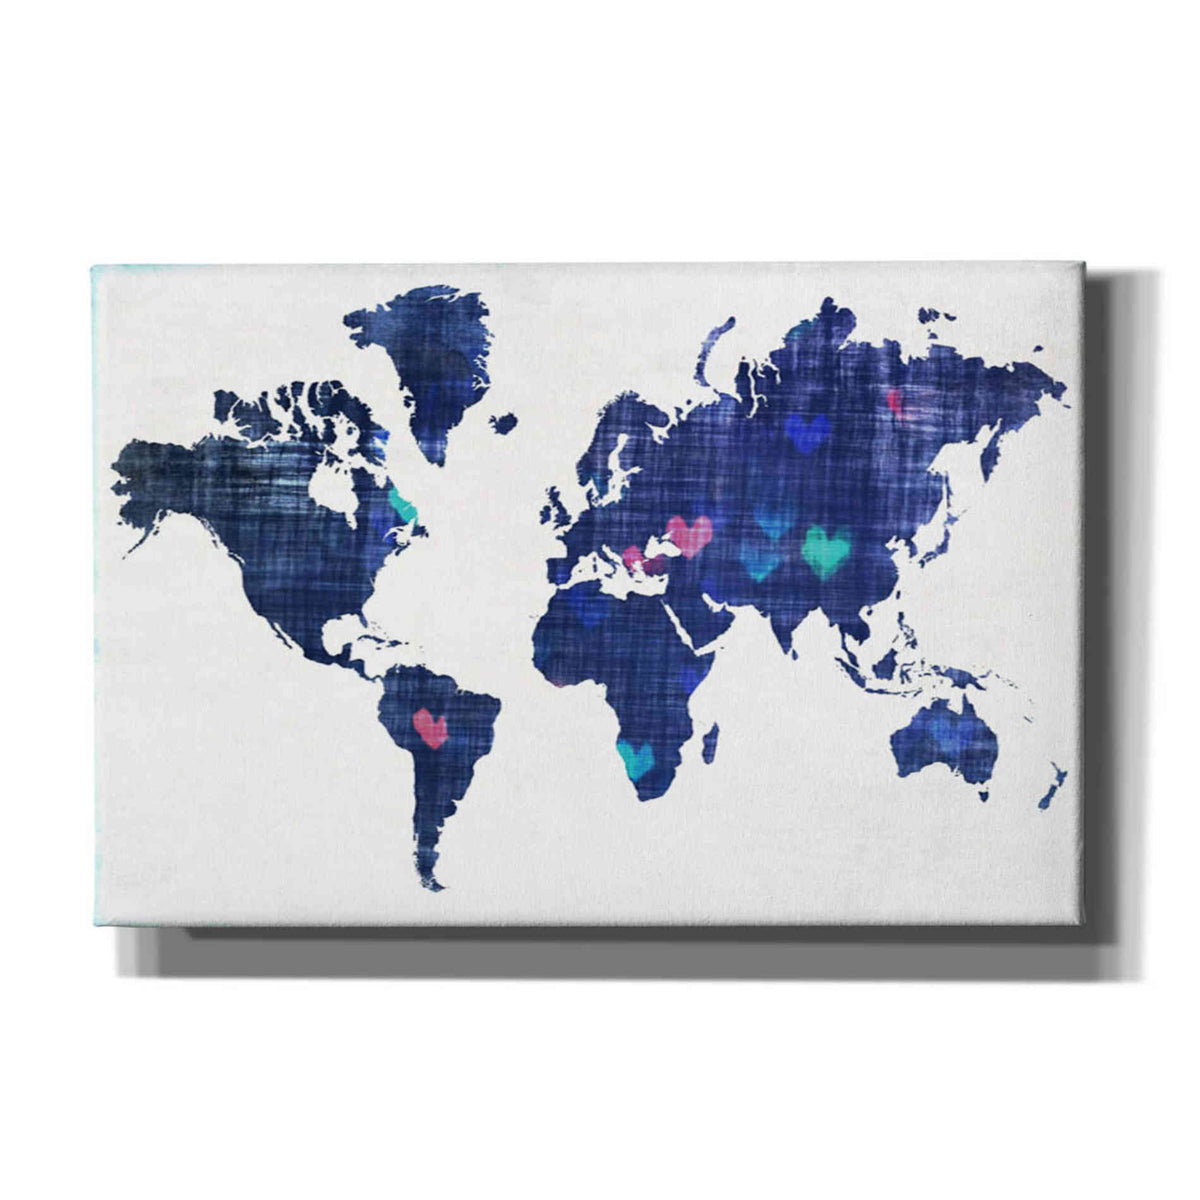 Epic Graffiti 'Hearts World Map 3' by Irena Orlov, Giclee Canvas Wall Art